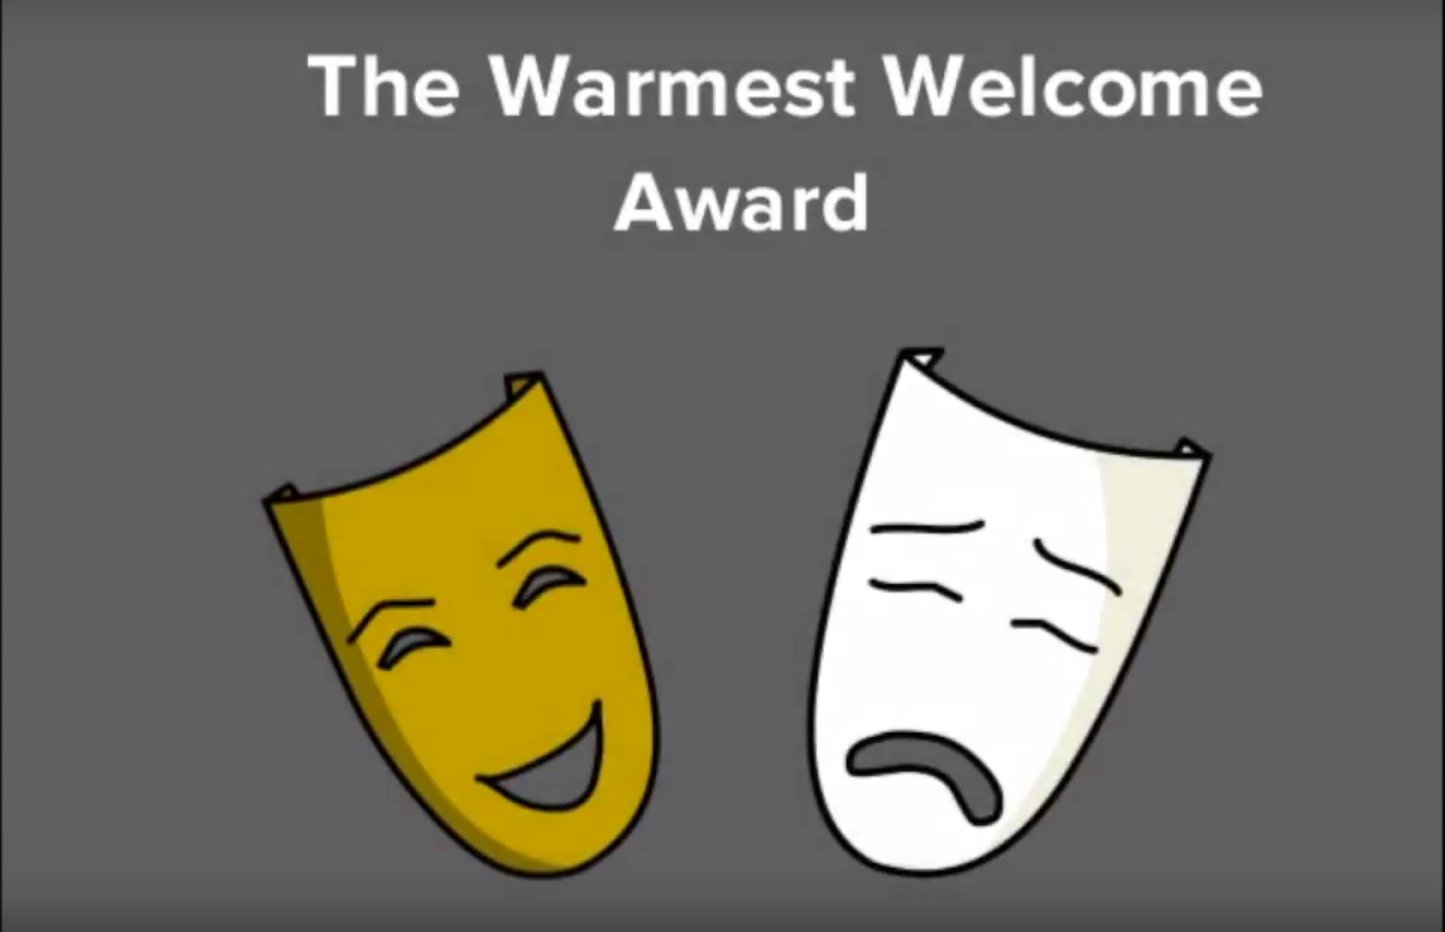 The Warmest Welcome Award ISTE 2017